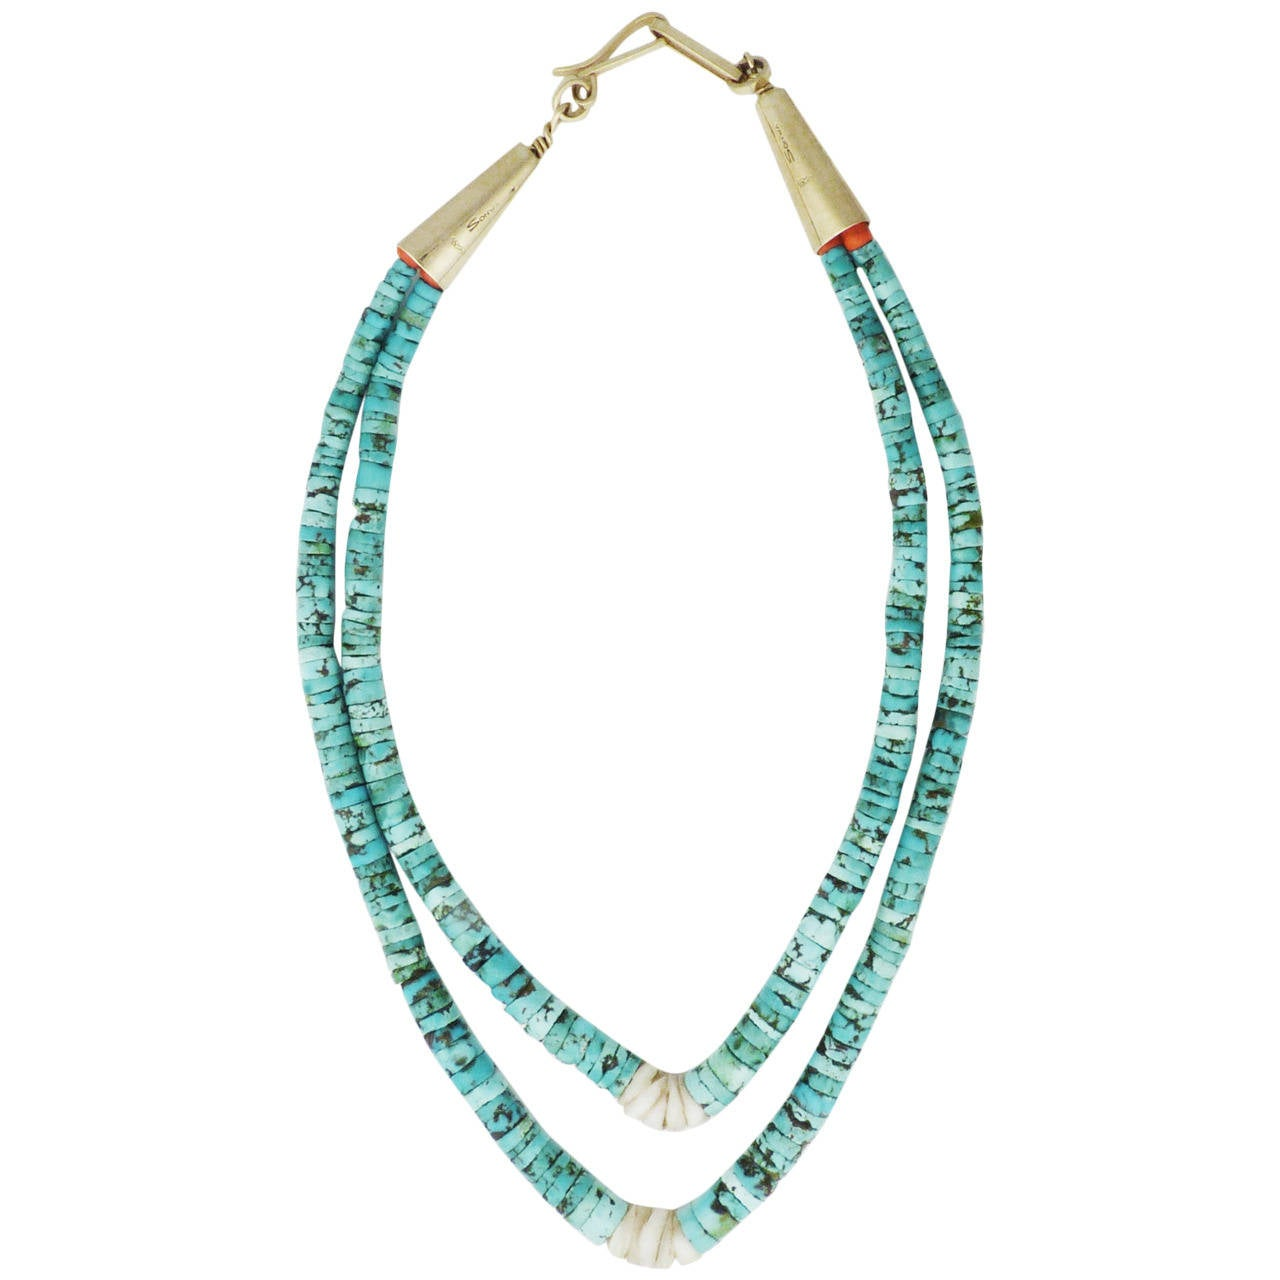 sonwai jocla necklace at 1stdibs